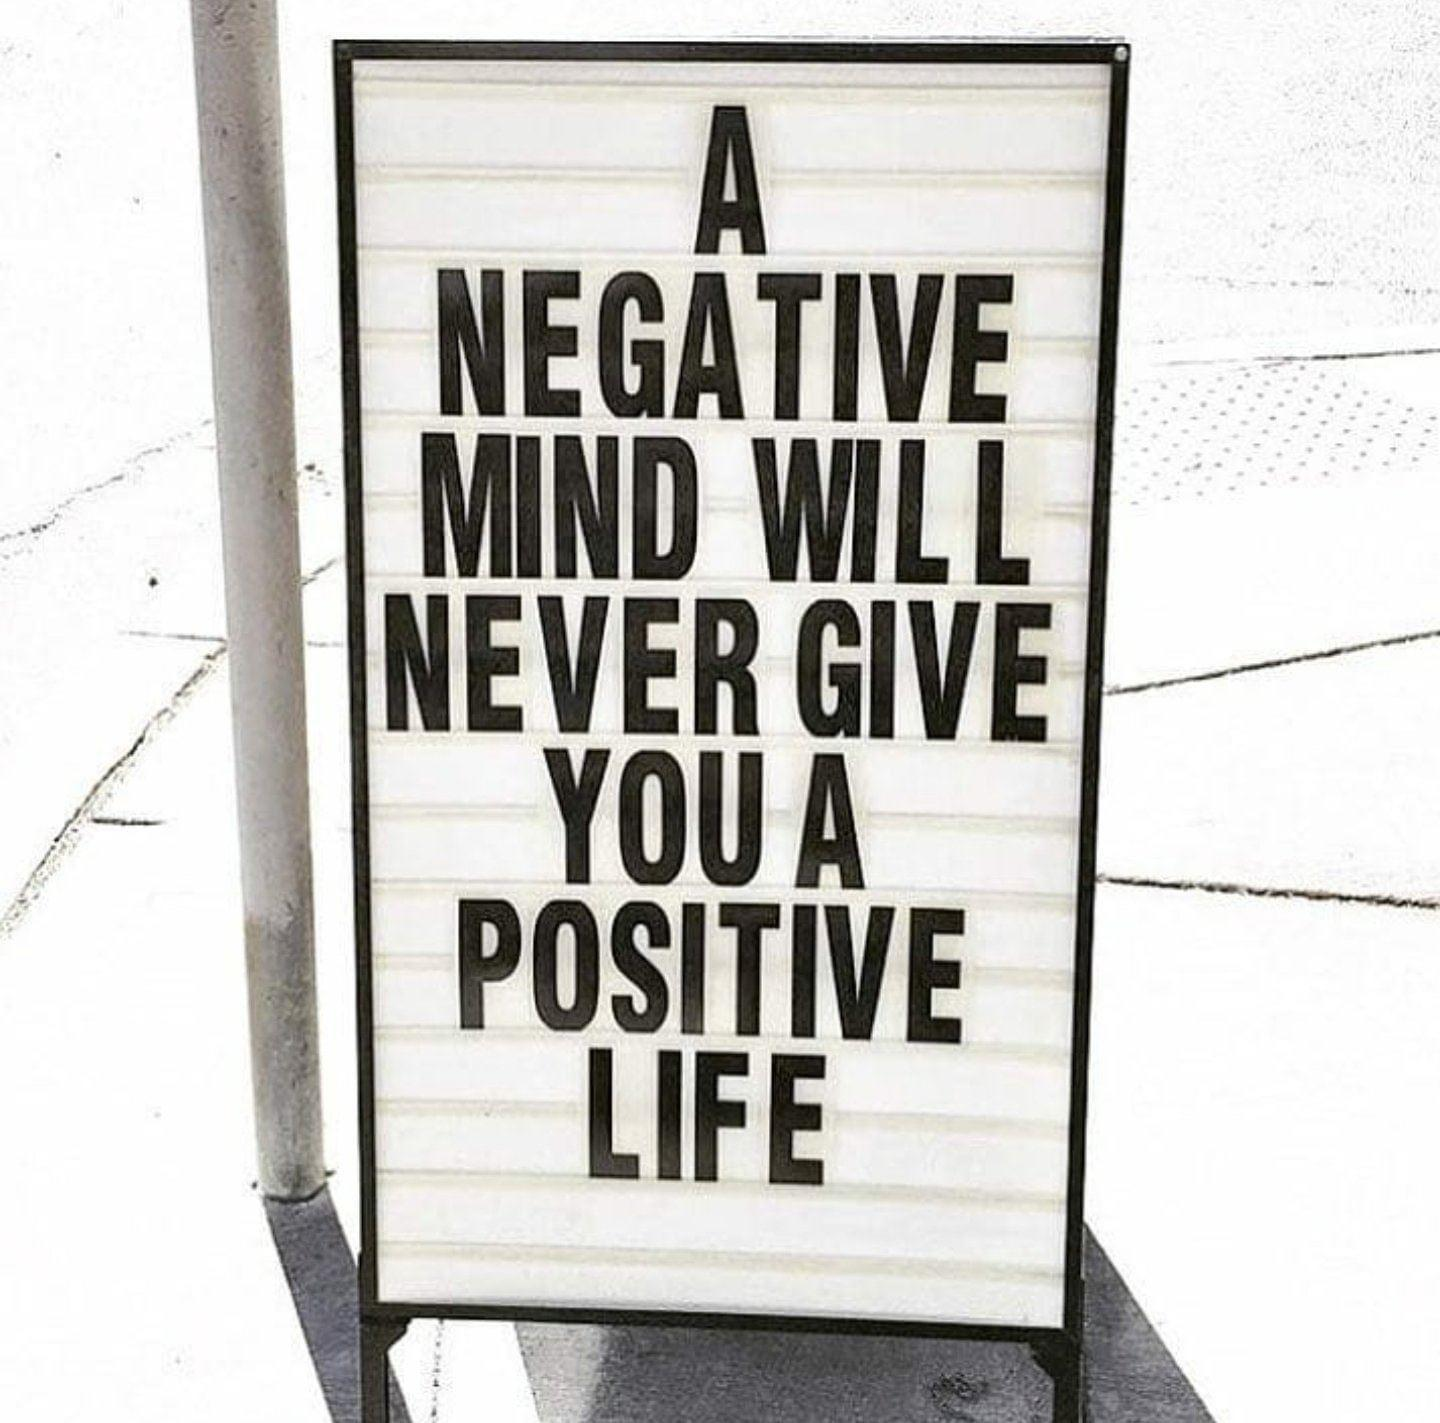 [Image] Stay Positive!